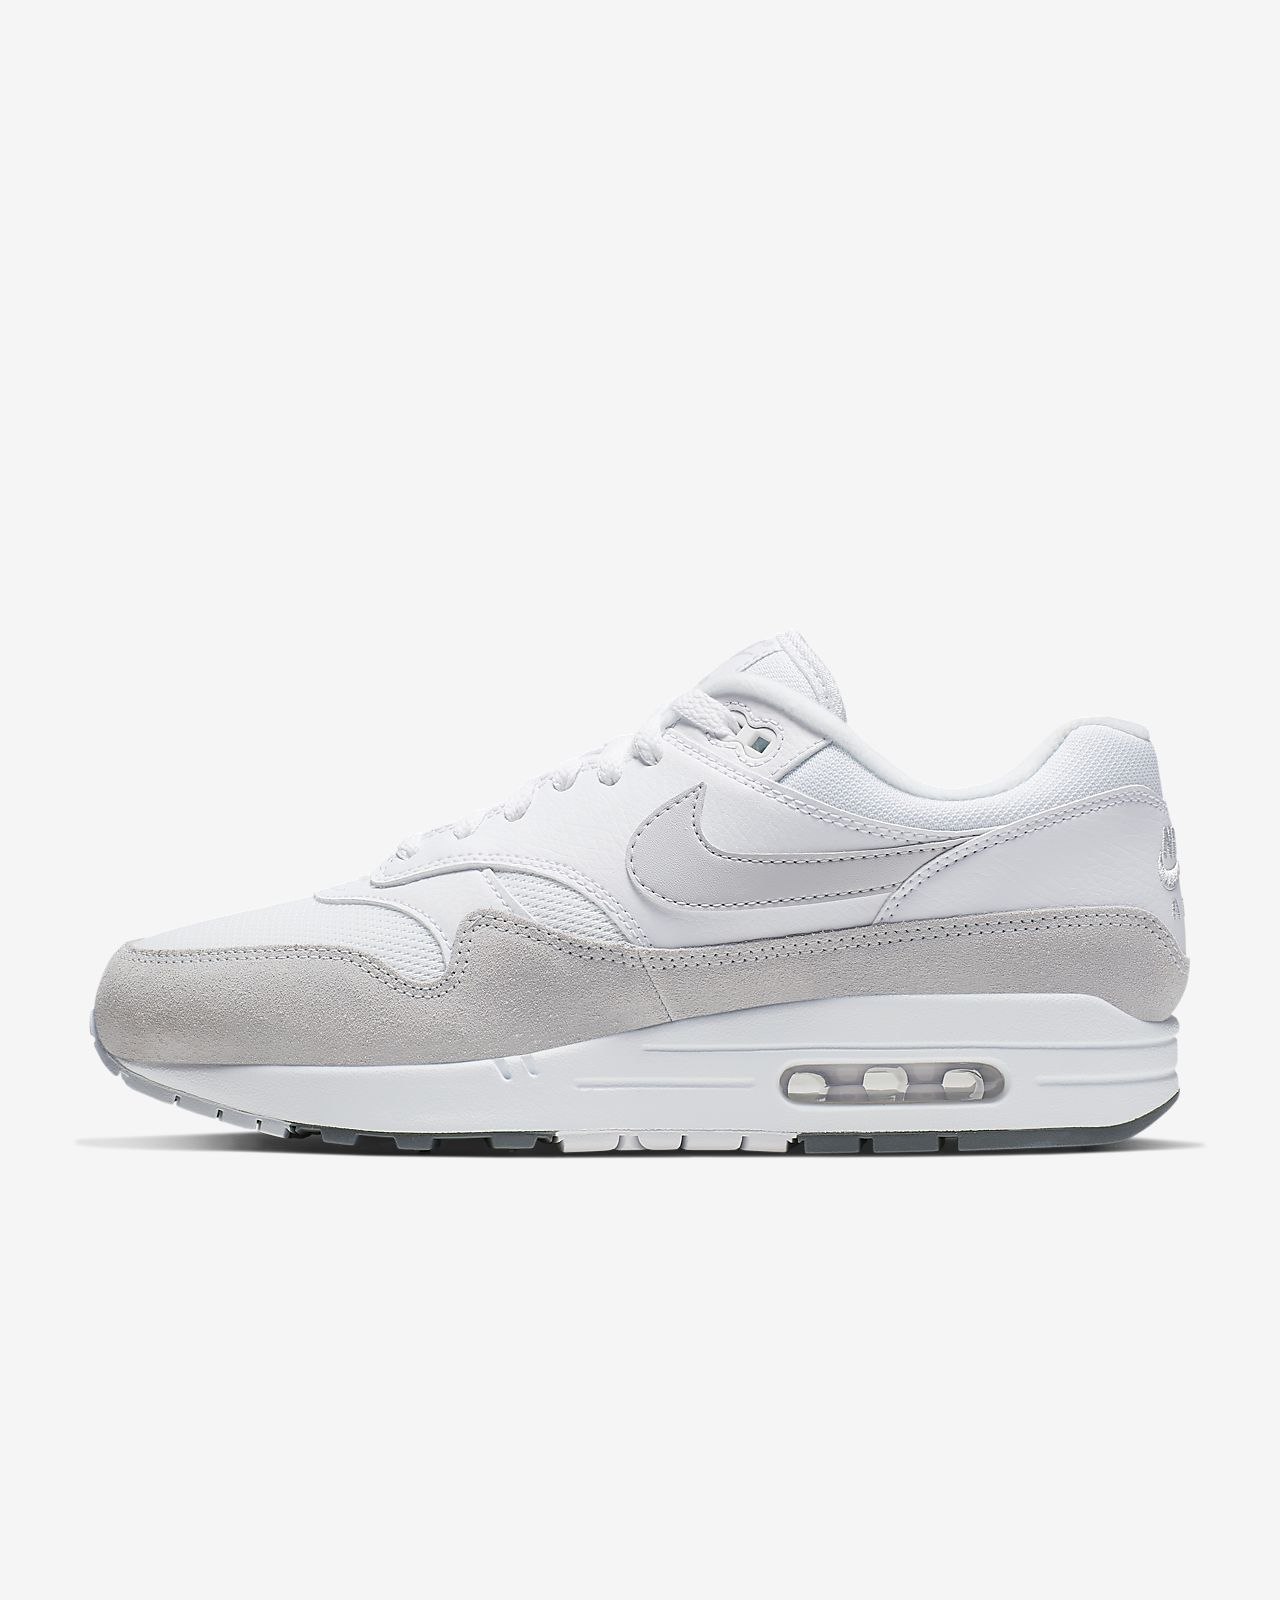 the best attitude 3b9c4 afaa3 Low Resolution Nike Air Max 1 Men s Shoe Nike Air Max 1 Men s Shoe